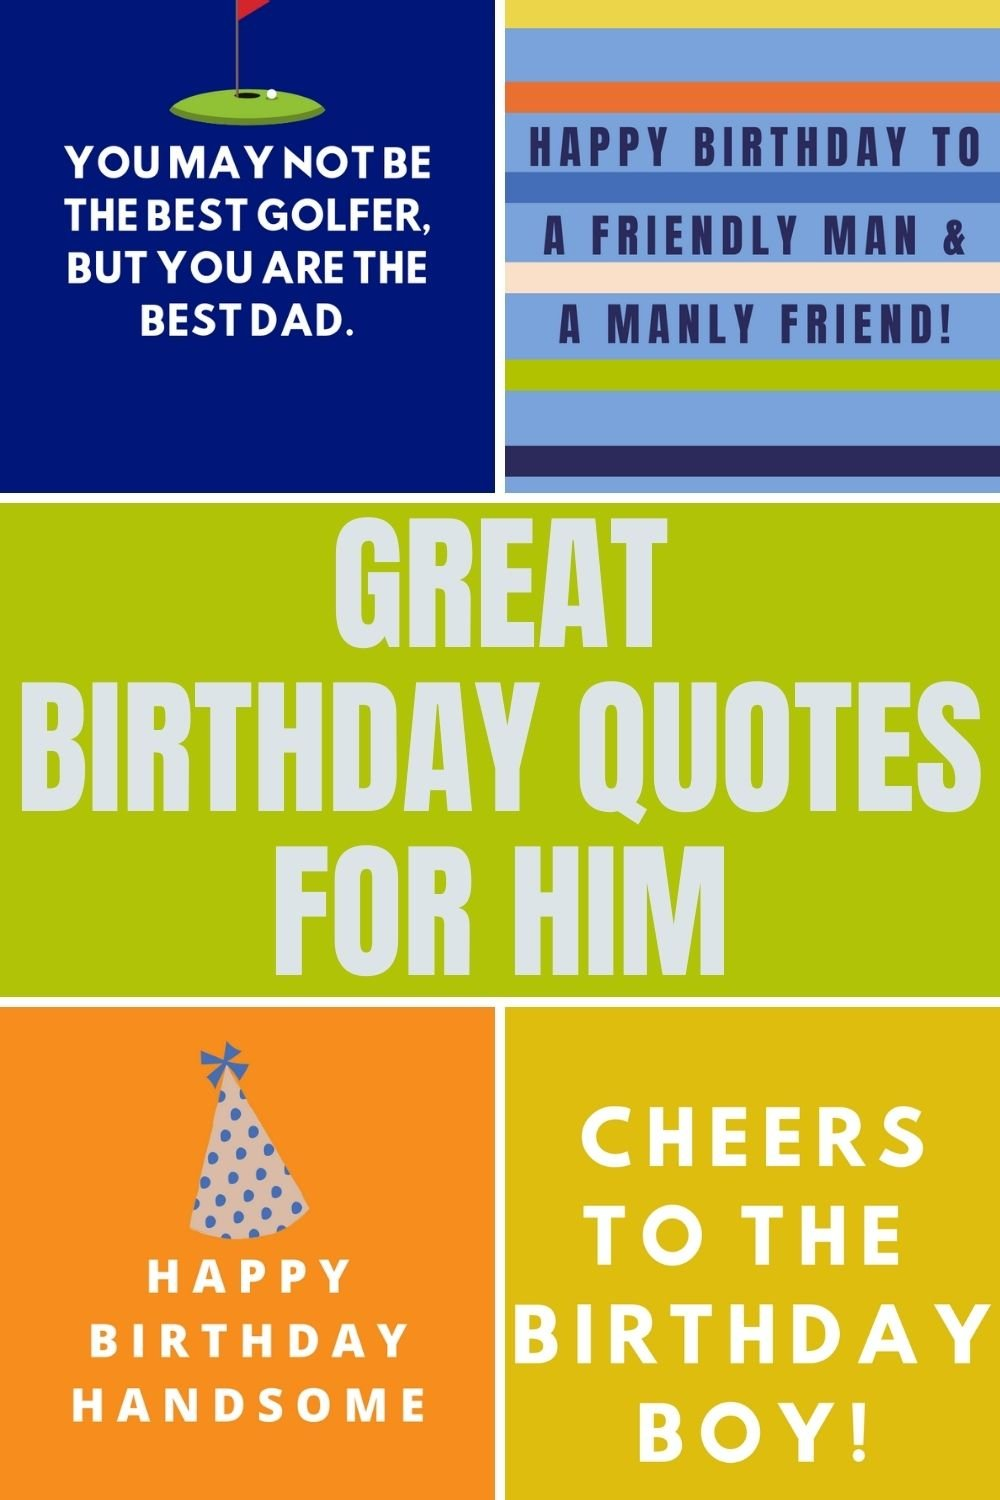 Best Bday wishes for him